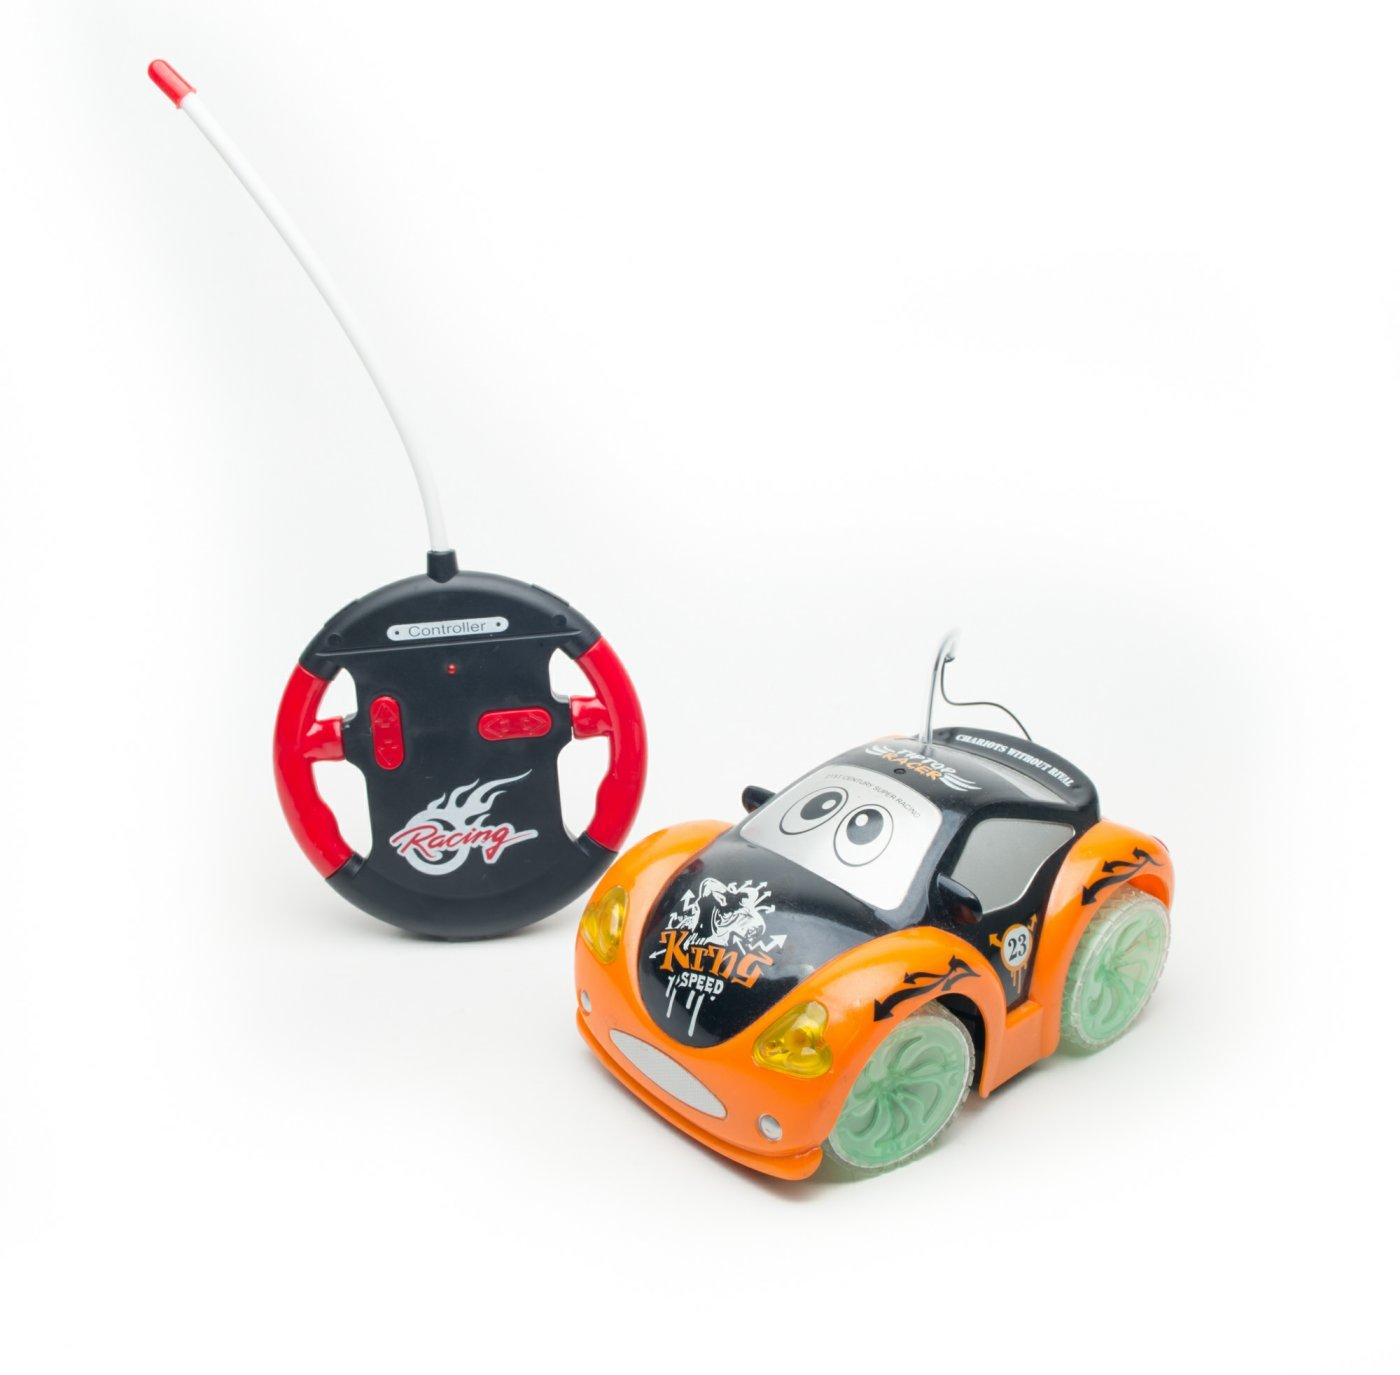 Music /& Transparent Wheel Toddler Remote Control Car . New Age 4 Channel Remote Control Cartoon Car with Flashing light